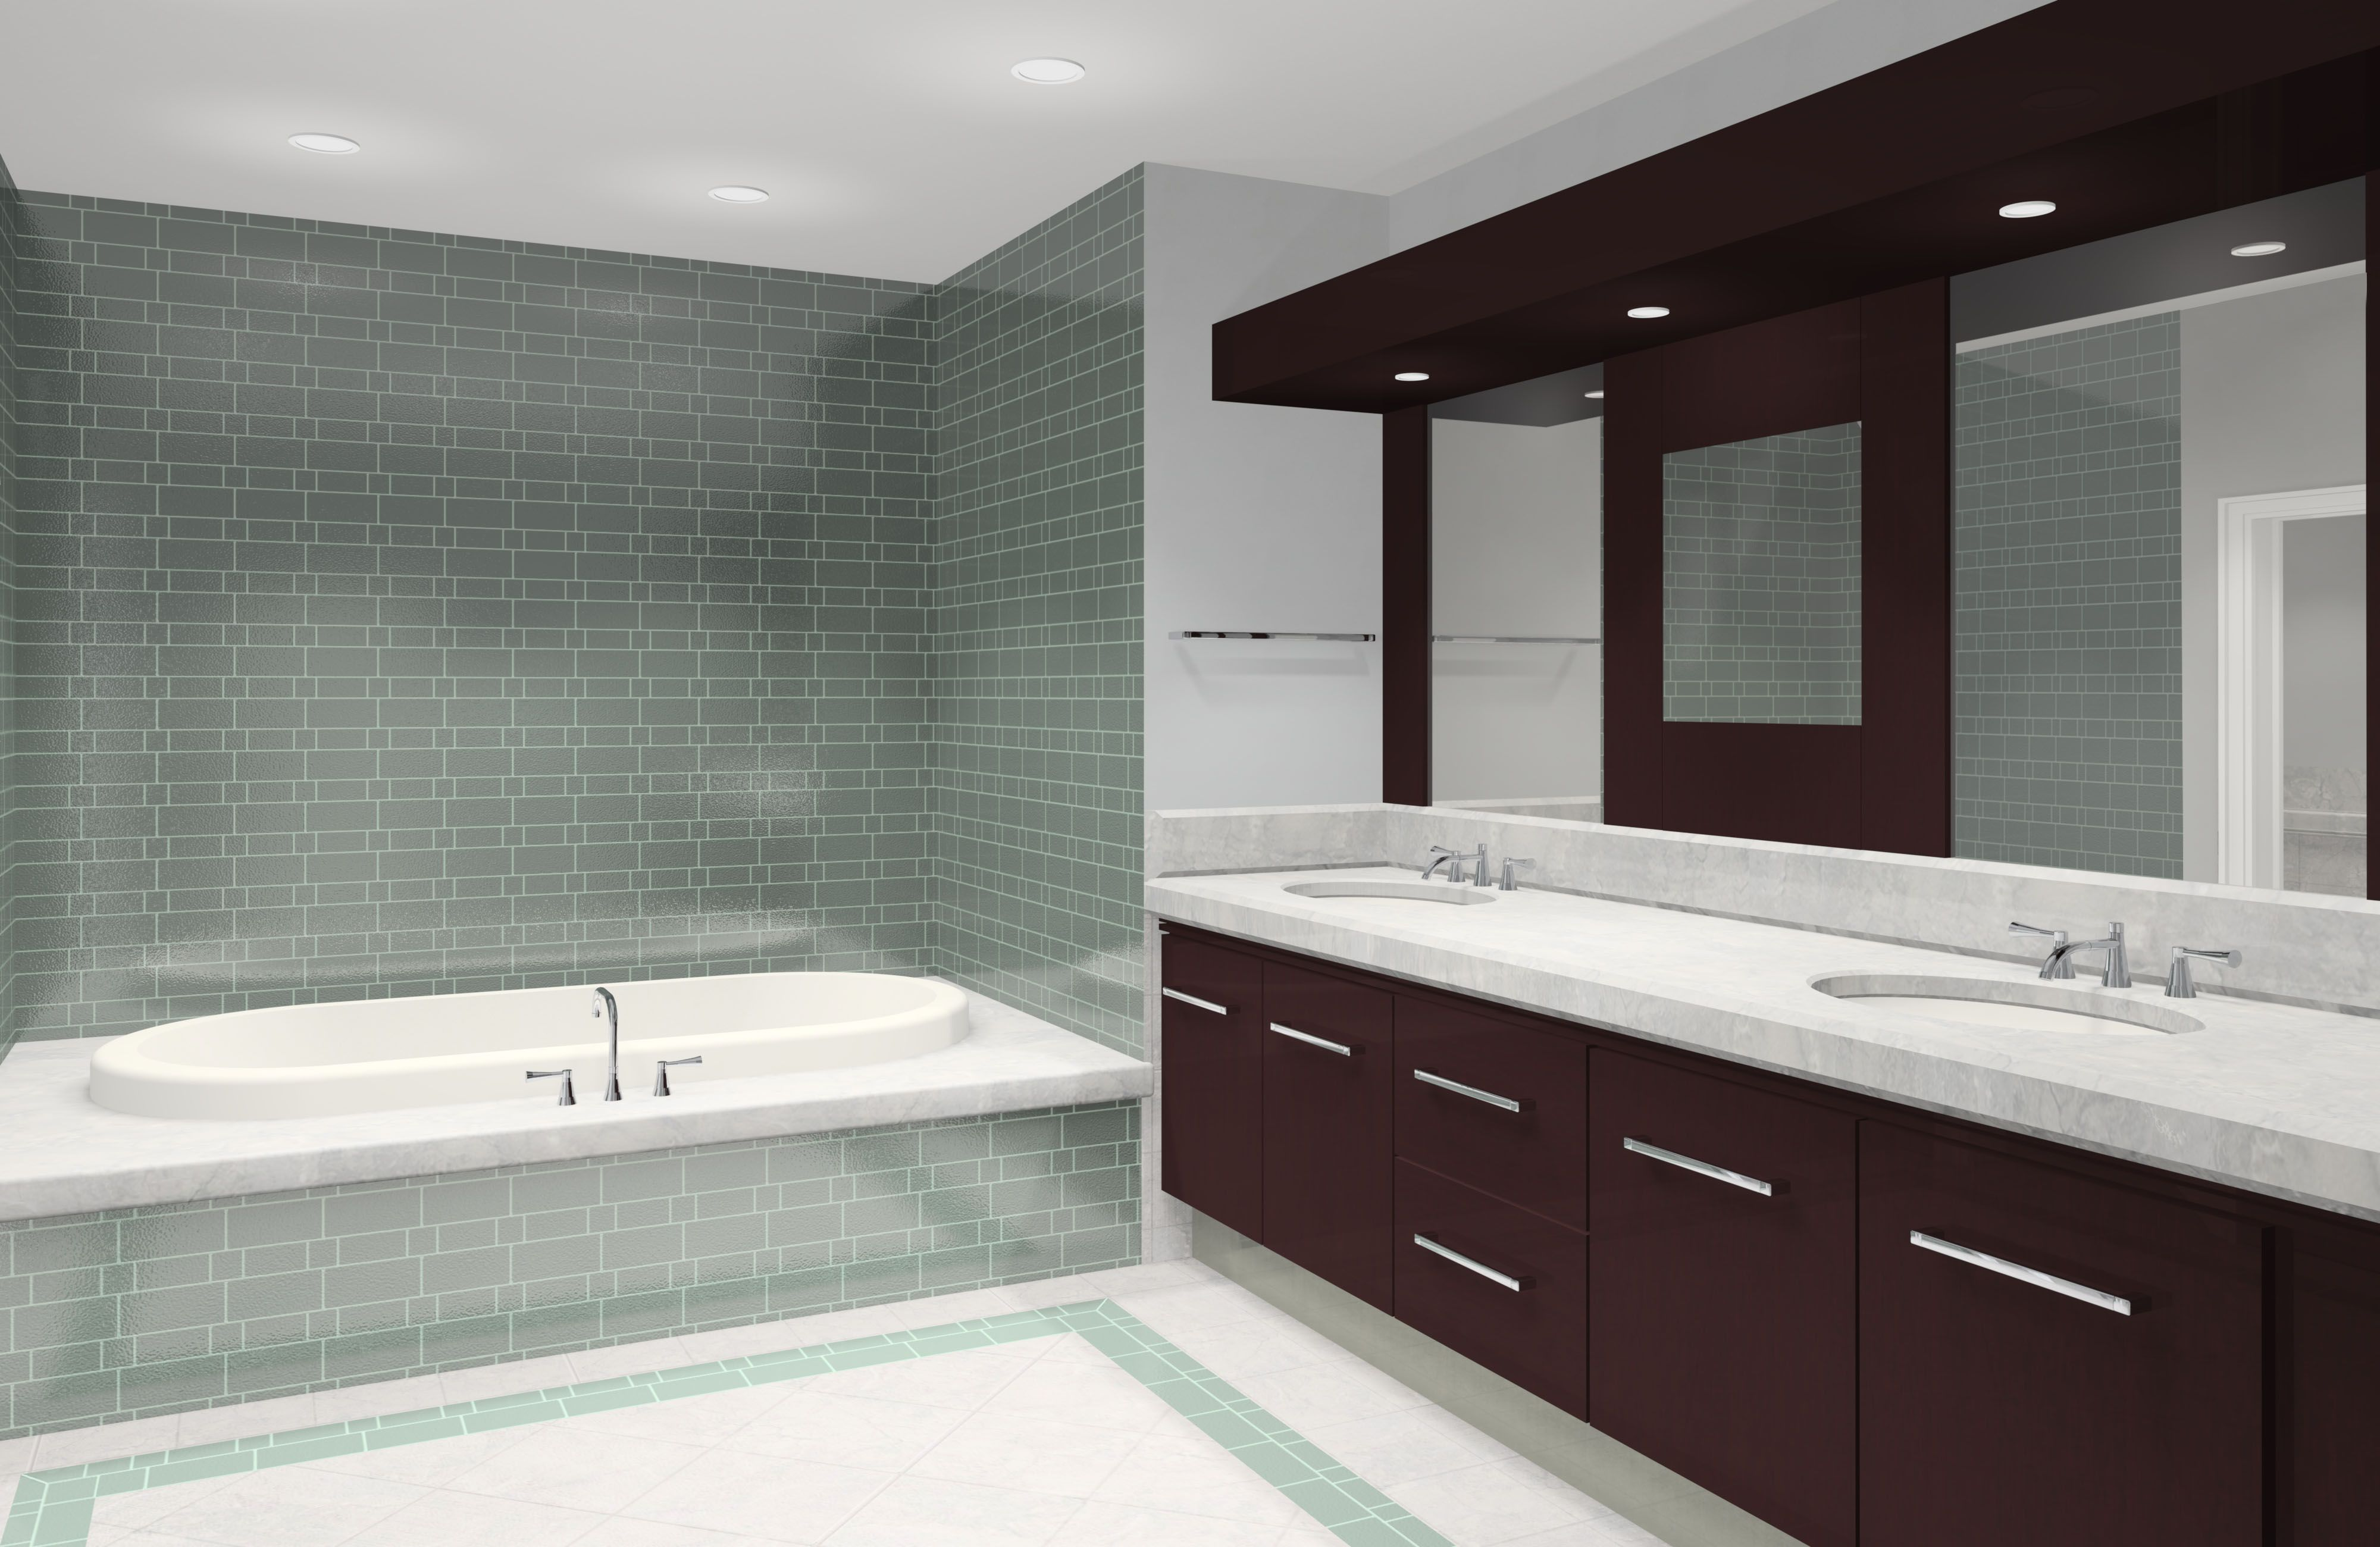 Grey Tile Wall Use in Awesome Bathroom Design Ideas with White Bathtub and Oak Vanity